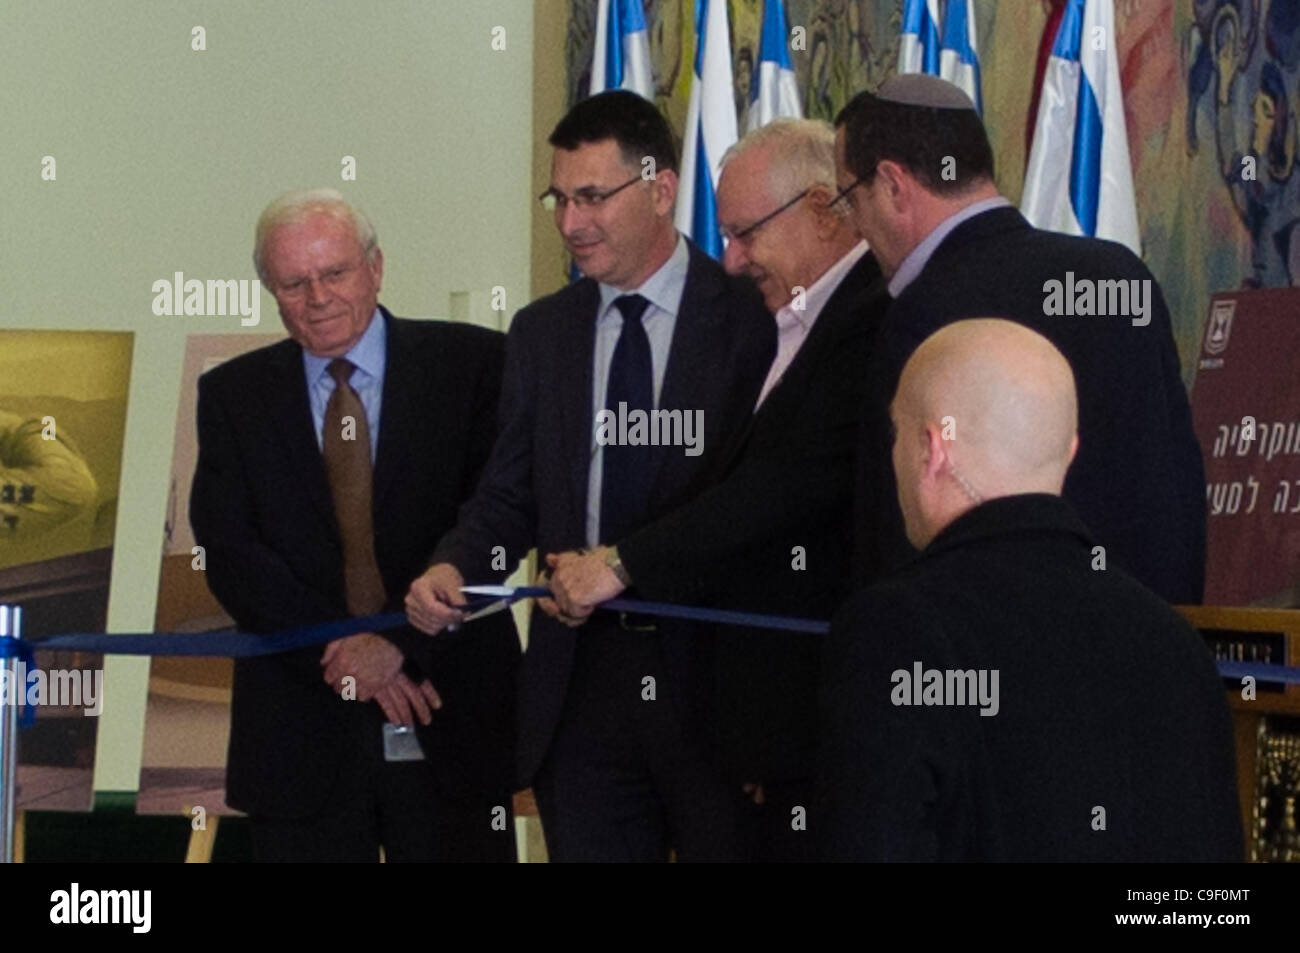 Speaker of the Knesset Reuven Rubi Rivlin and Minister of Education Gideon Saar inaugurate a new visitor center - Stock Image